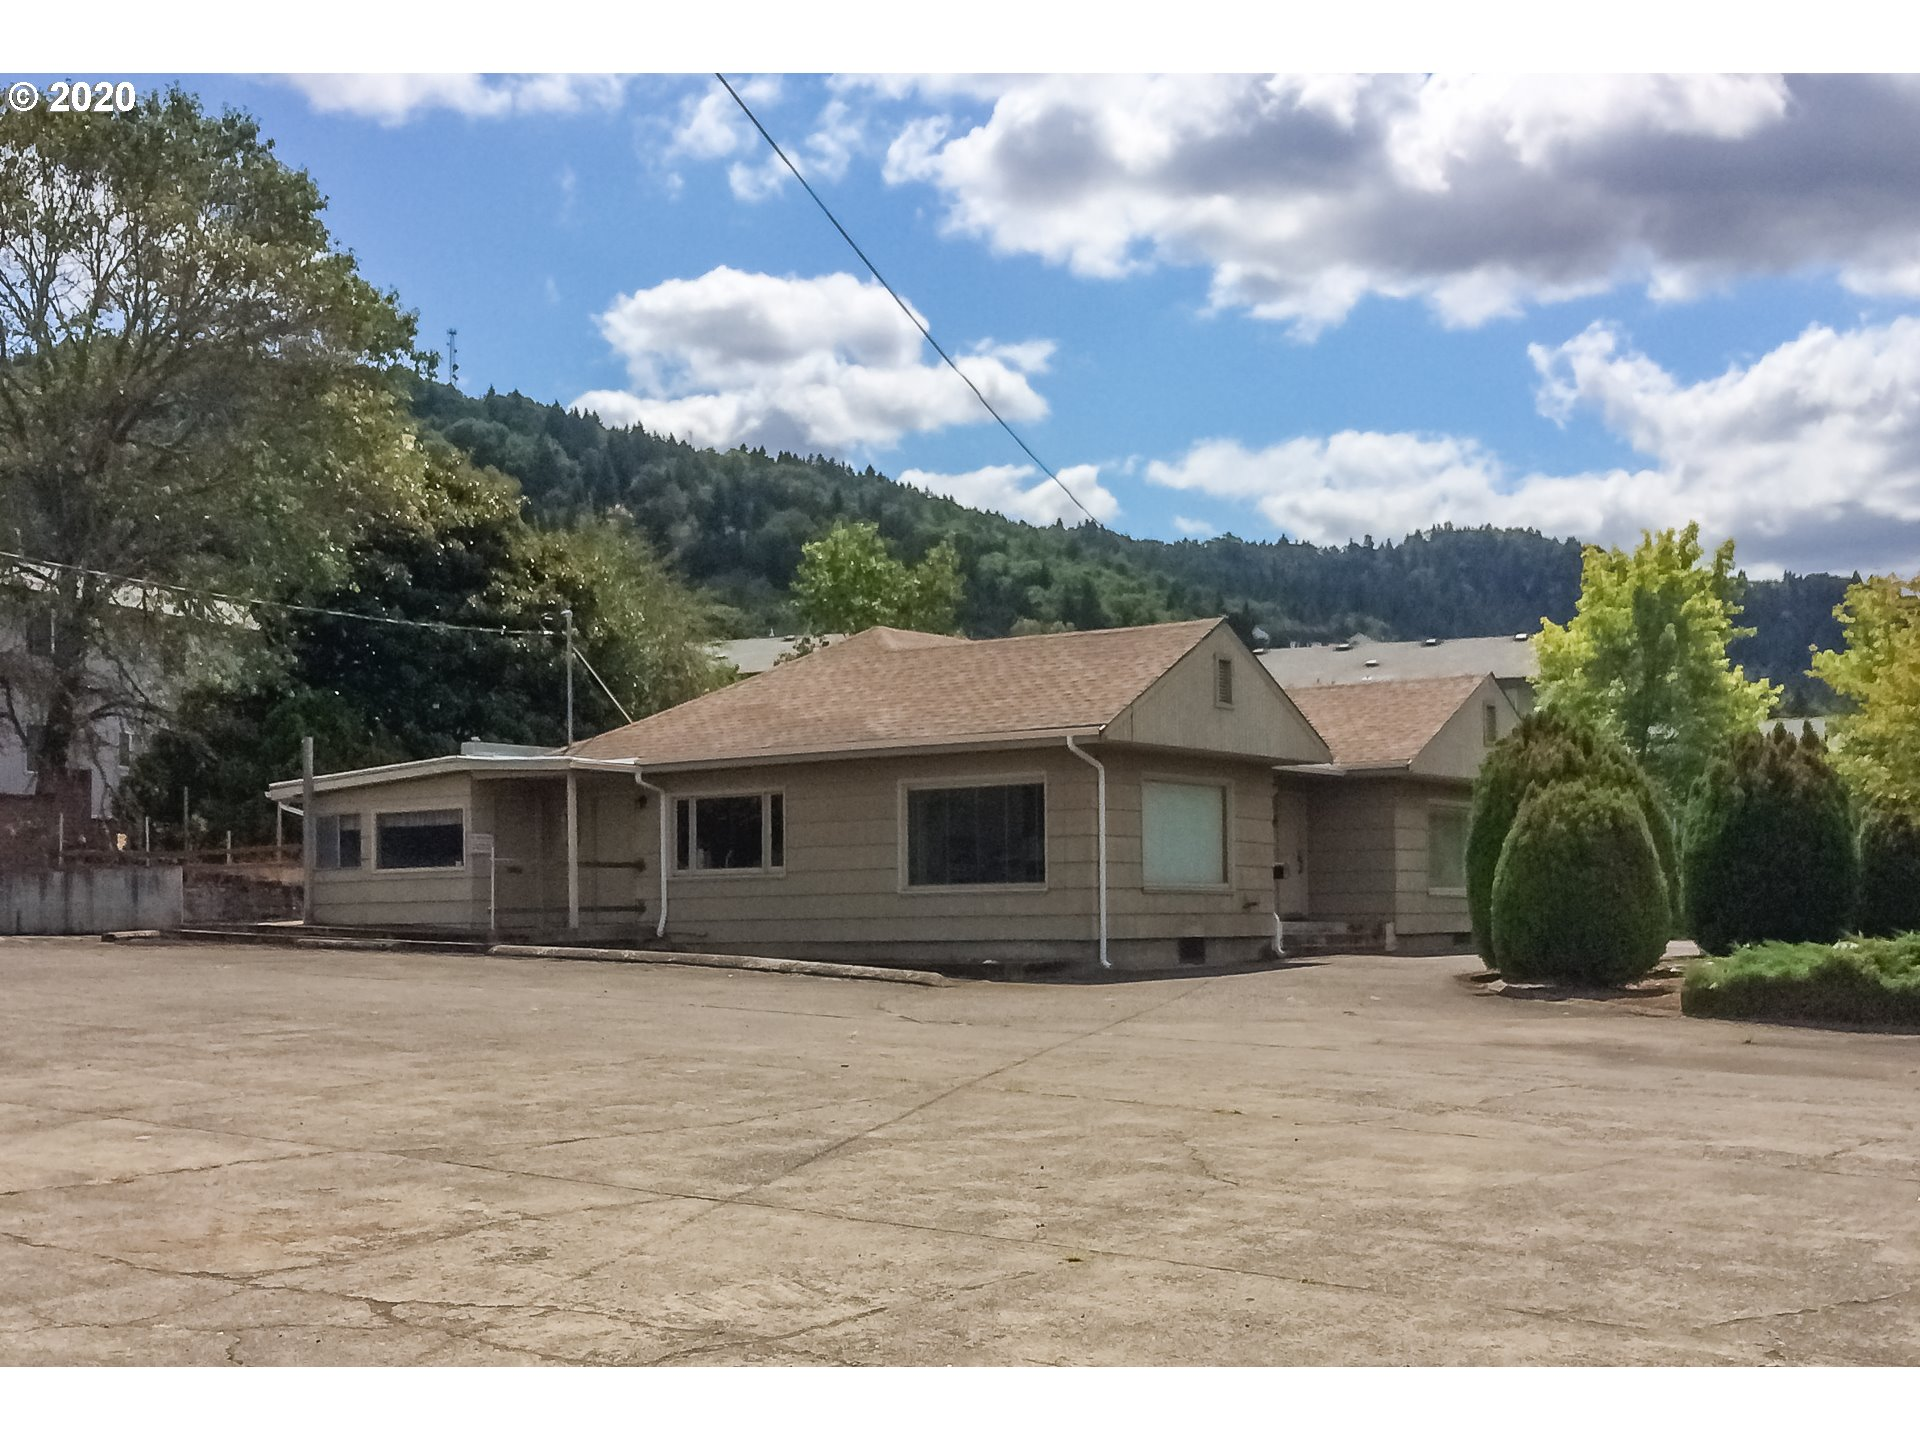 859 W Lookingglass Rd, Roseburg OR 97471 - Photo 2